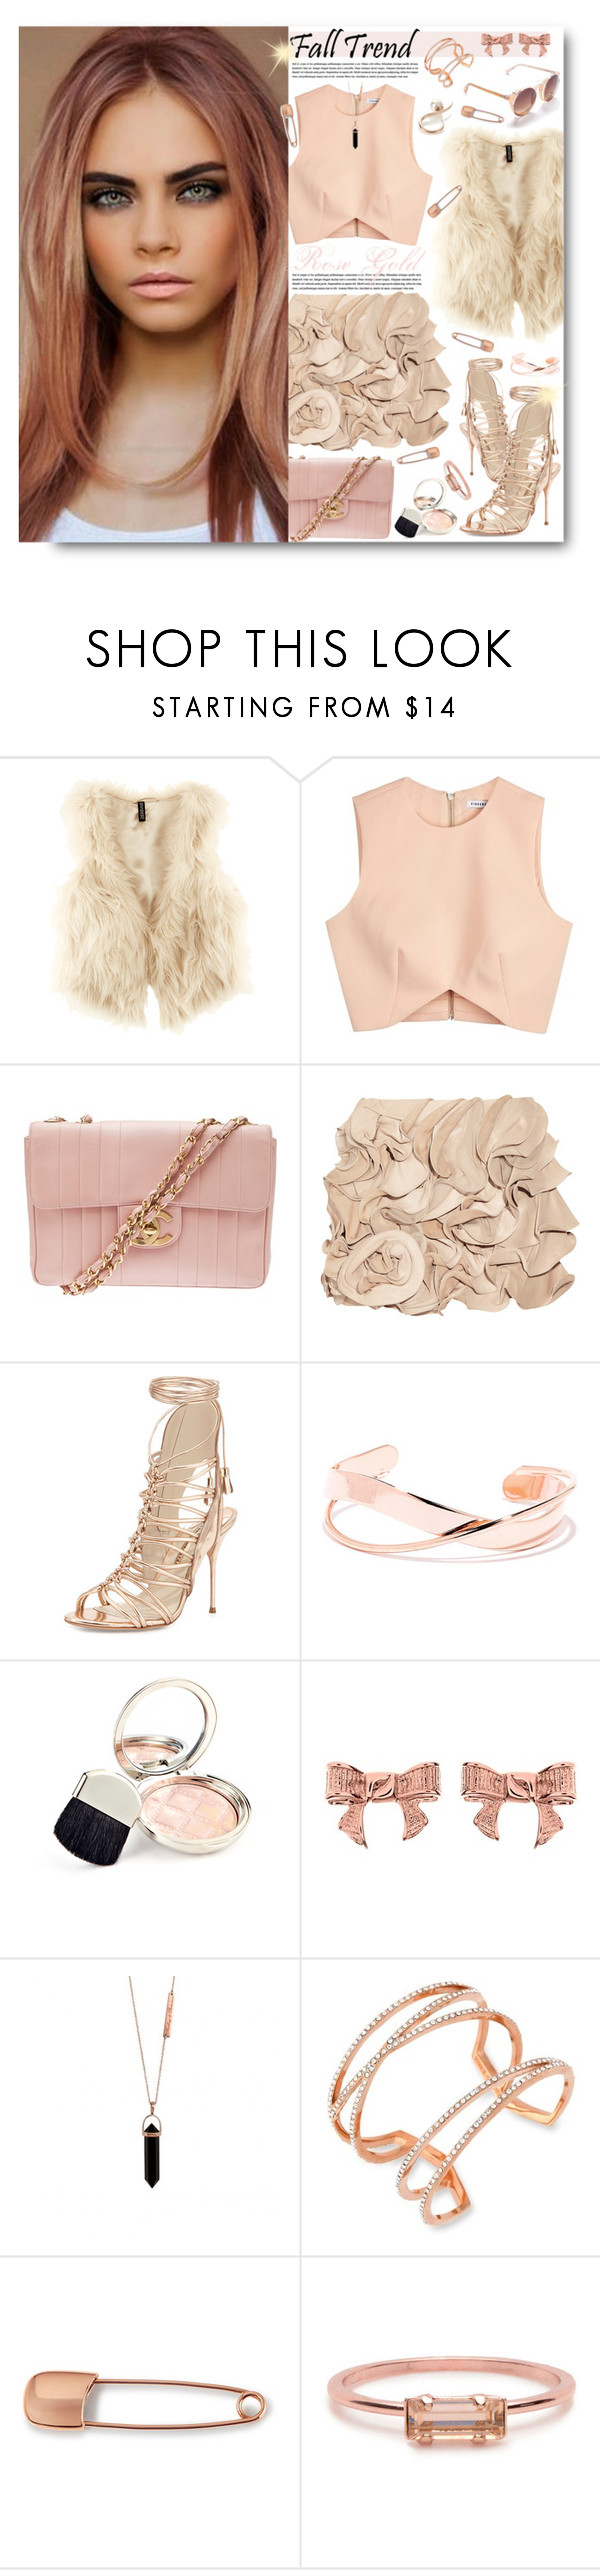 """""""Untitled #186"""" by tinaisapenguin ❤ liked on Polyvore featuring H&M, Finders Keepers, Chanel, Valentino, Sophia Webster, By Terry, Ted Baker, Vince Camuto, Mara Hotung and Bing Bang"""